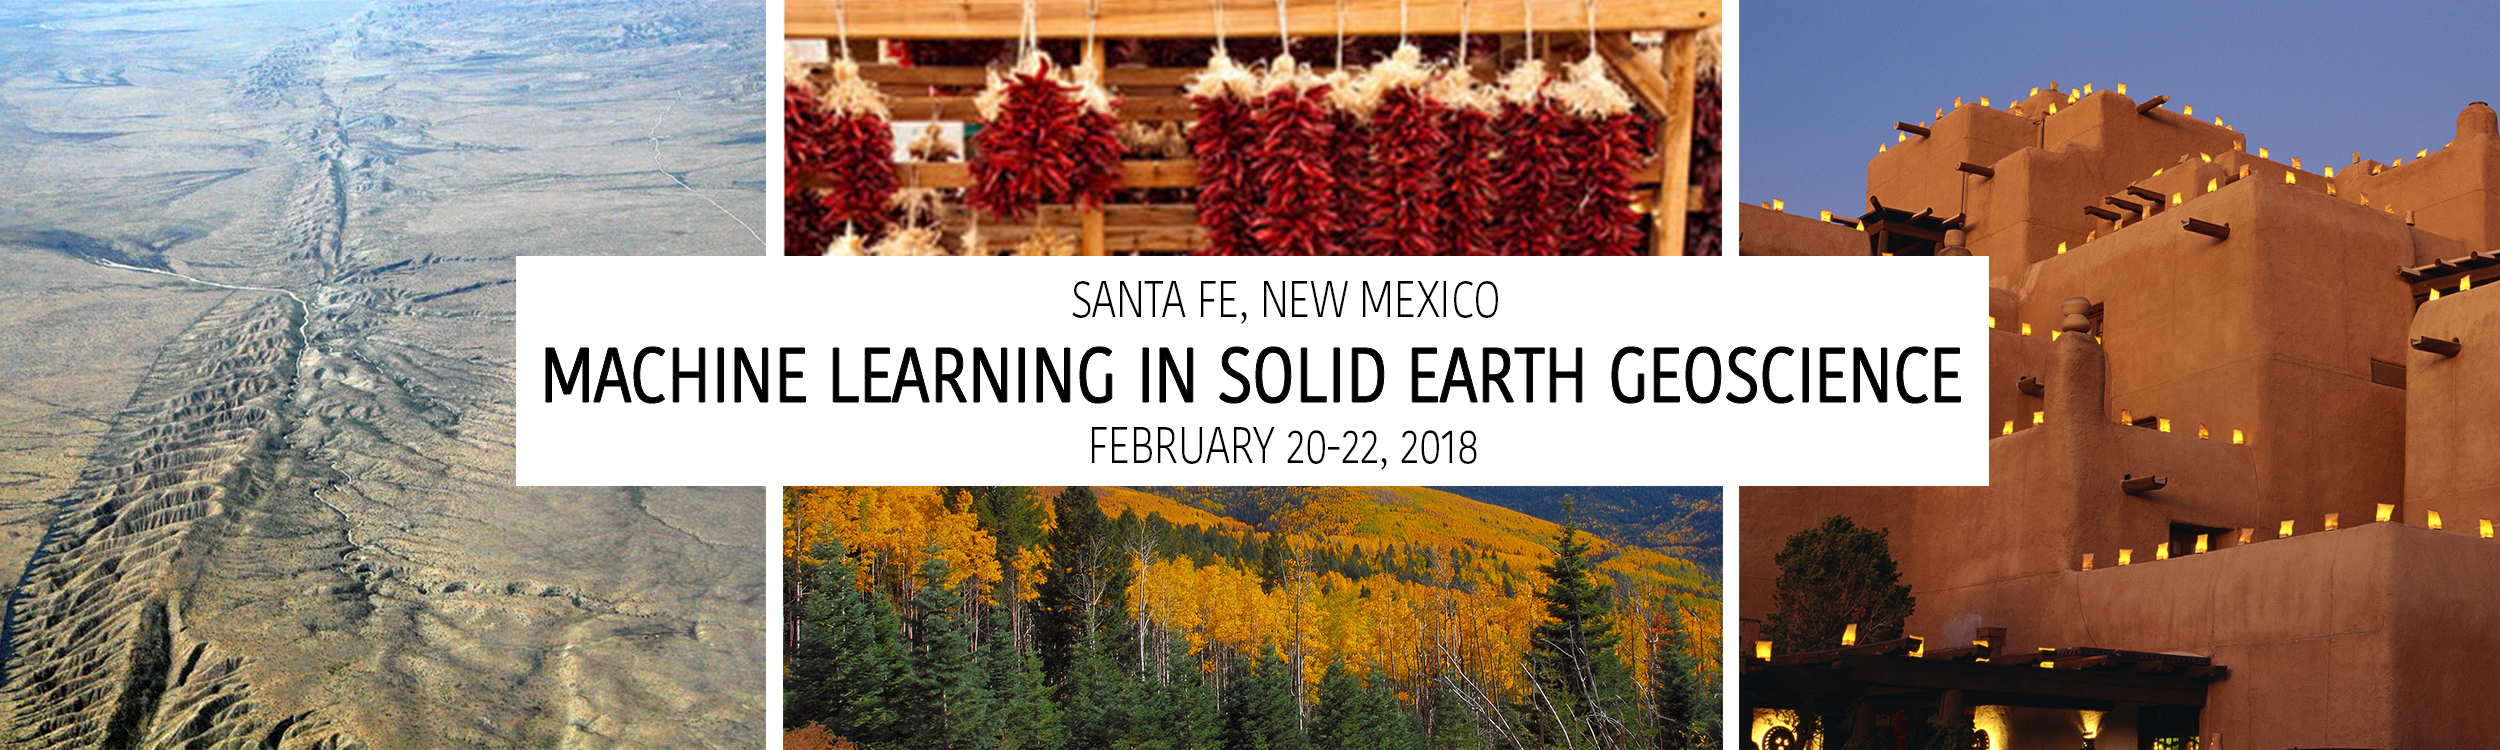 Machine Learning in Solid Earth Geoscience